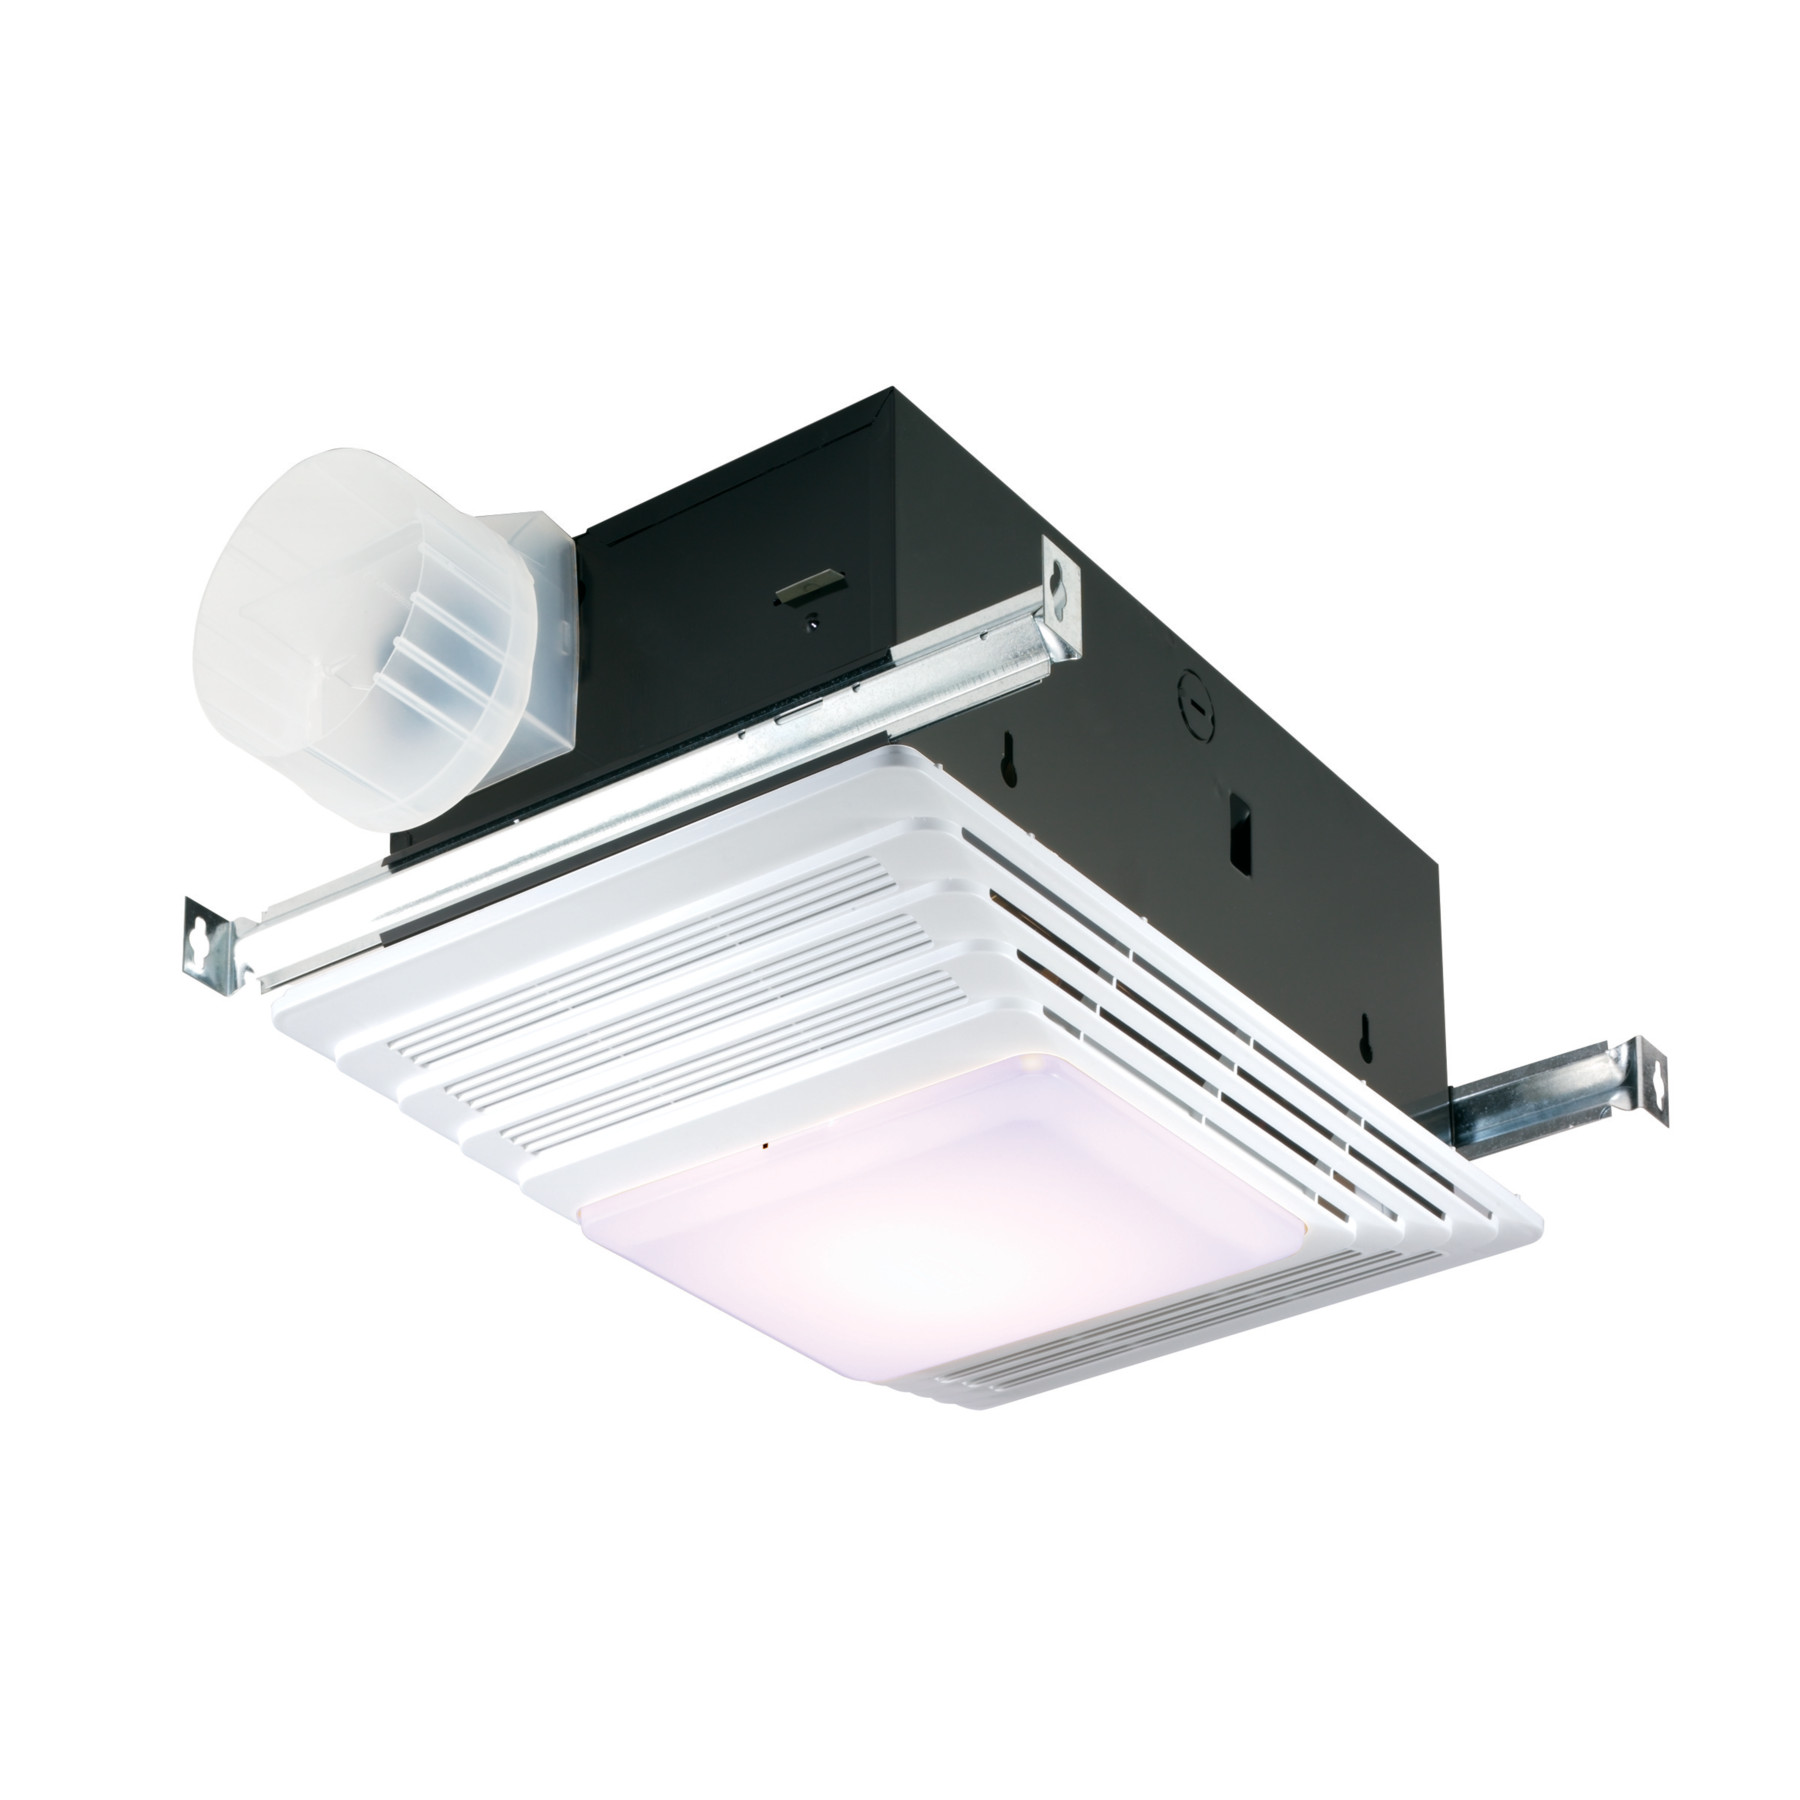 Bath And Exhaust Ventilation Fans With Heaters